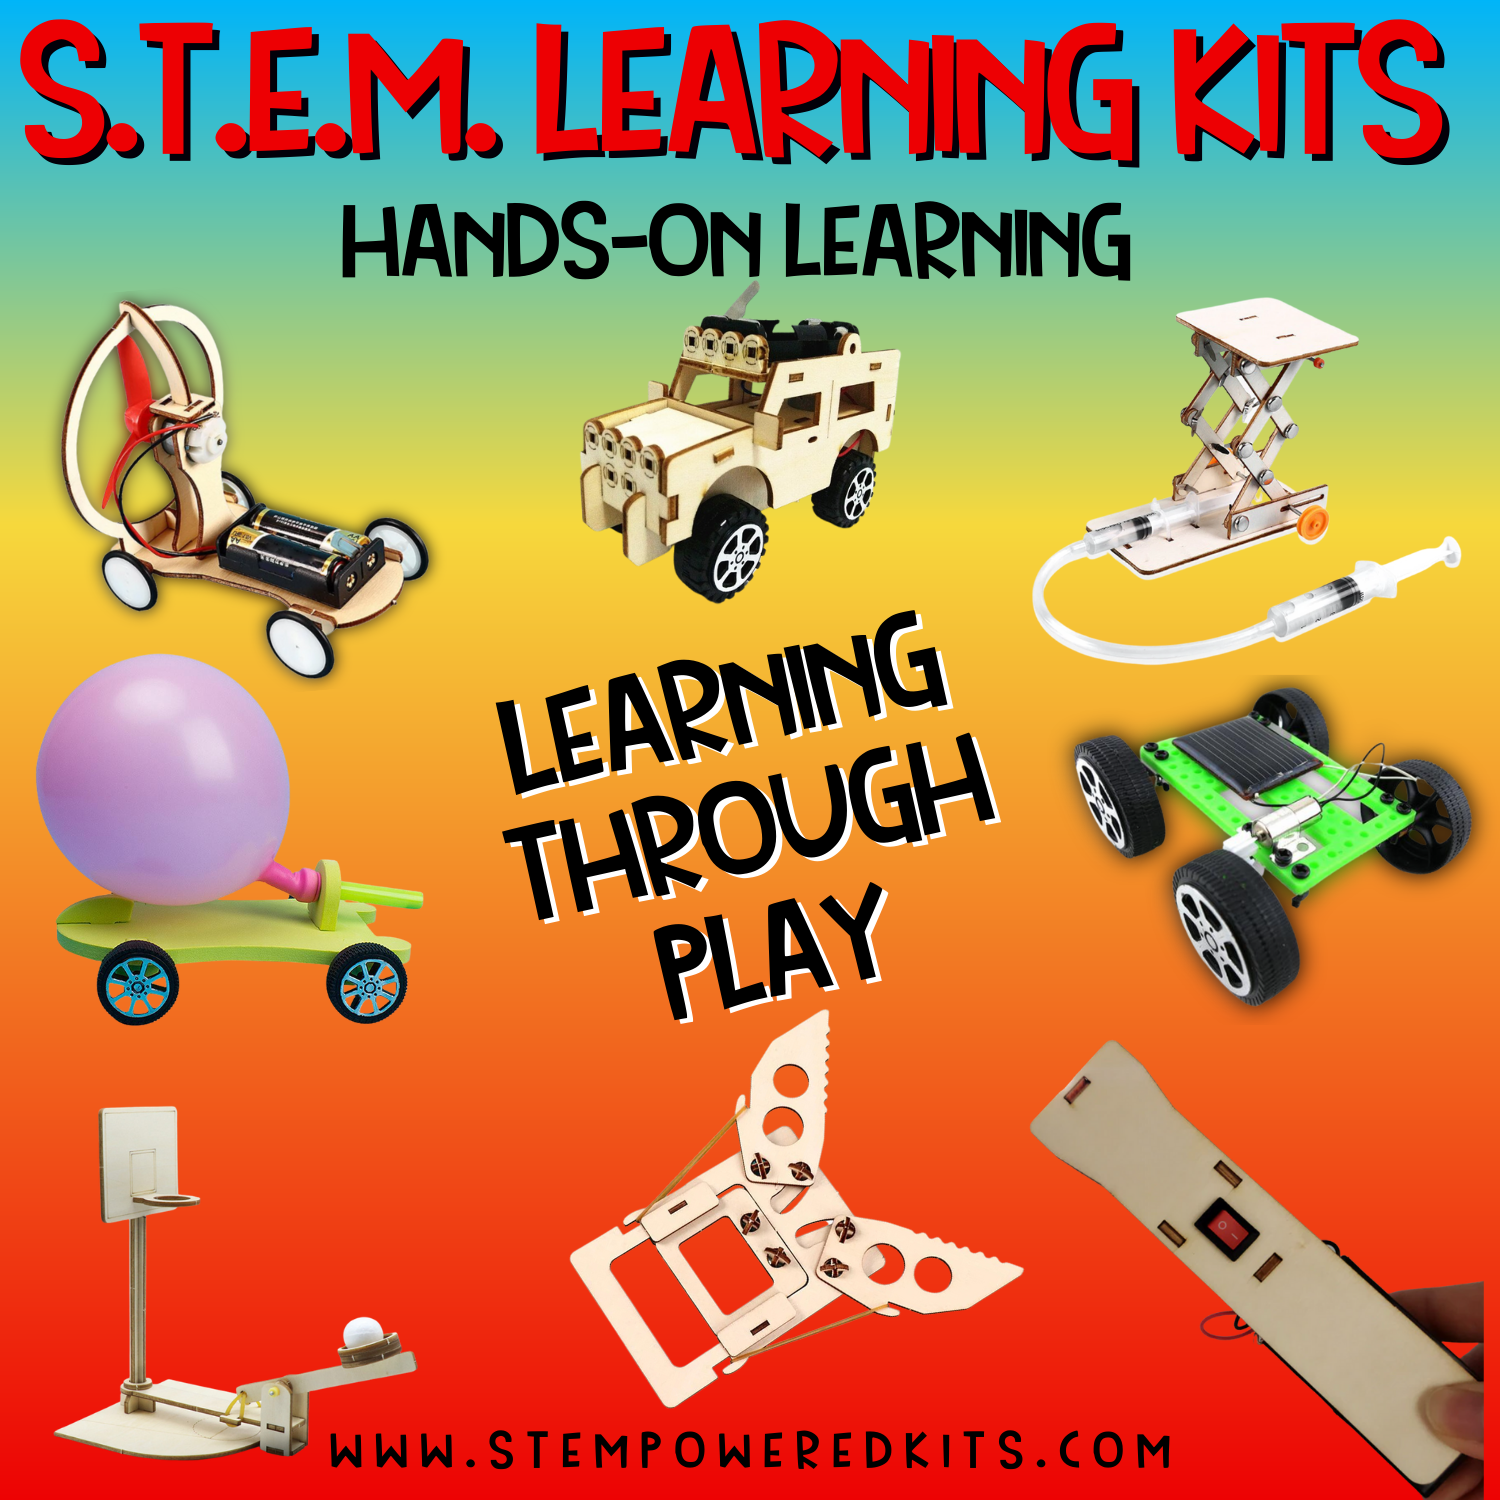 11 Year Old Business Owner Curating STEM Learning Toys